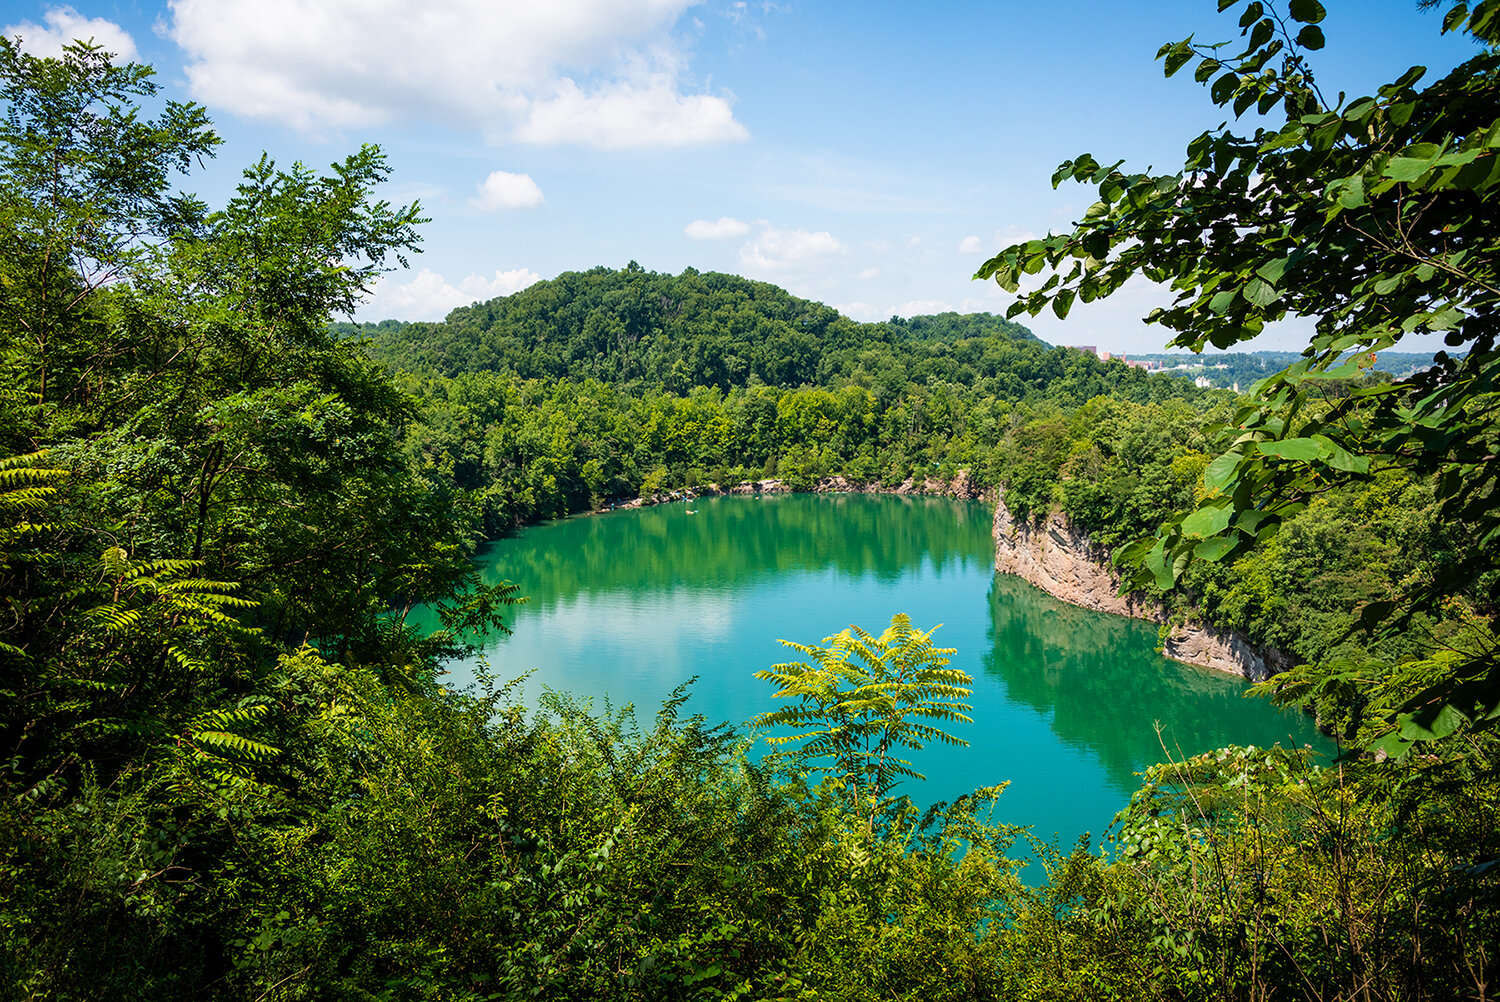 Summer Dip - Fort Dickerson Quarry; Knoxville, TennesseeIt was a super hot day and these turquoise waters were calling my name! The main entrance to the park was closed this day which is where people normally enter to go for a dip! I'm not sure how some people got down there but I sure wished I was one of them! Such an awesome site!Open Edition